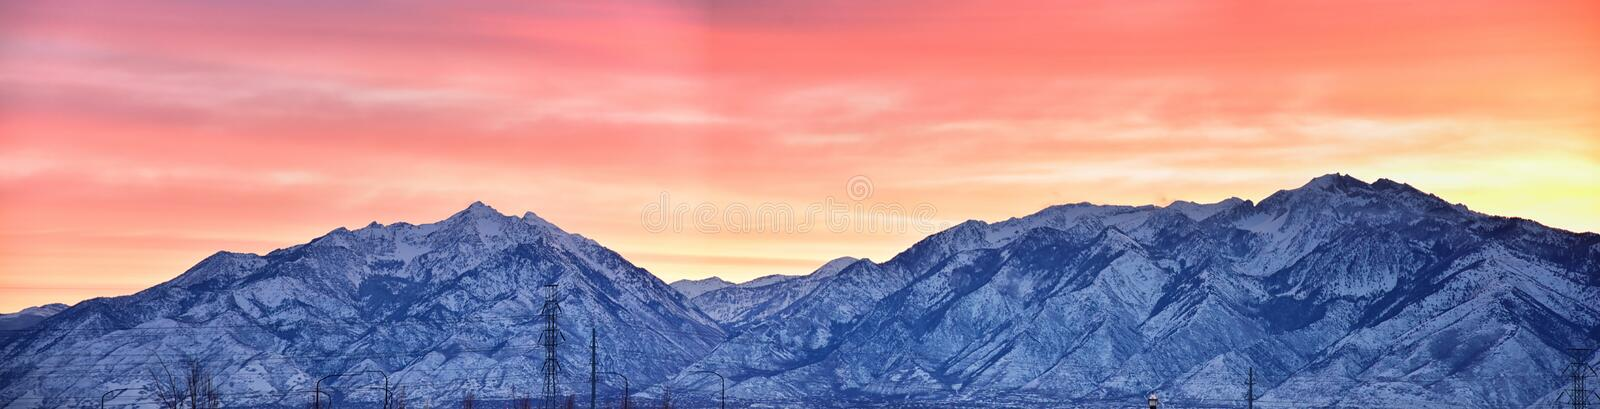 Panoramische zonsopgang van de Winter, mening van Sneeuw afgedekte Wasatch Front Rocky Mountains, de Vallei van Great Salt Lake e stock afbeeldingen